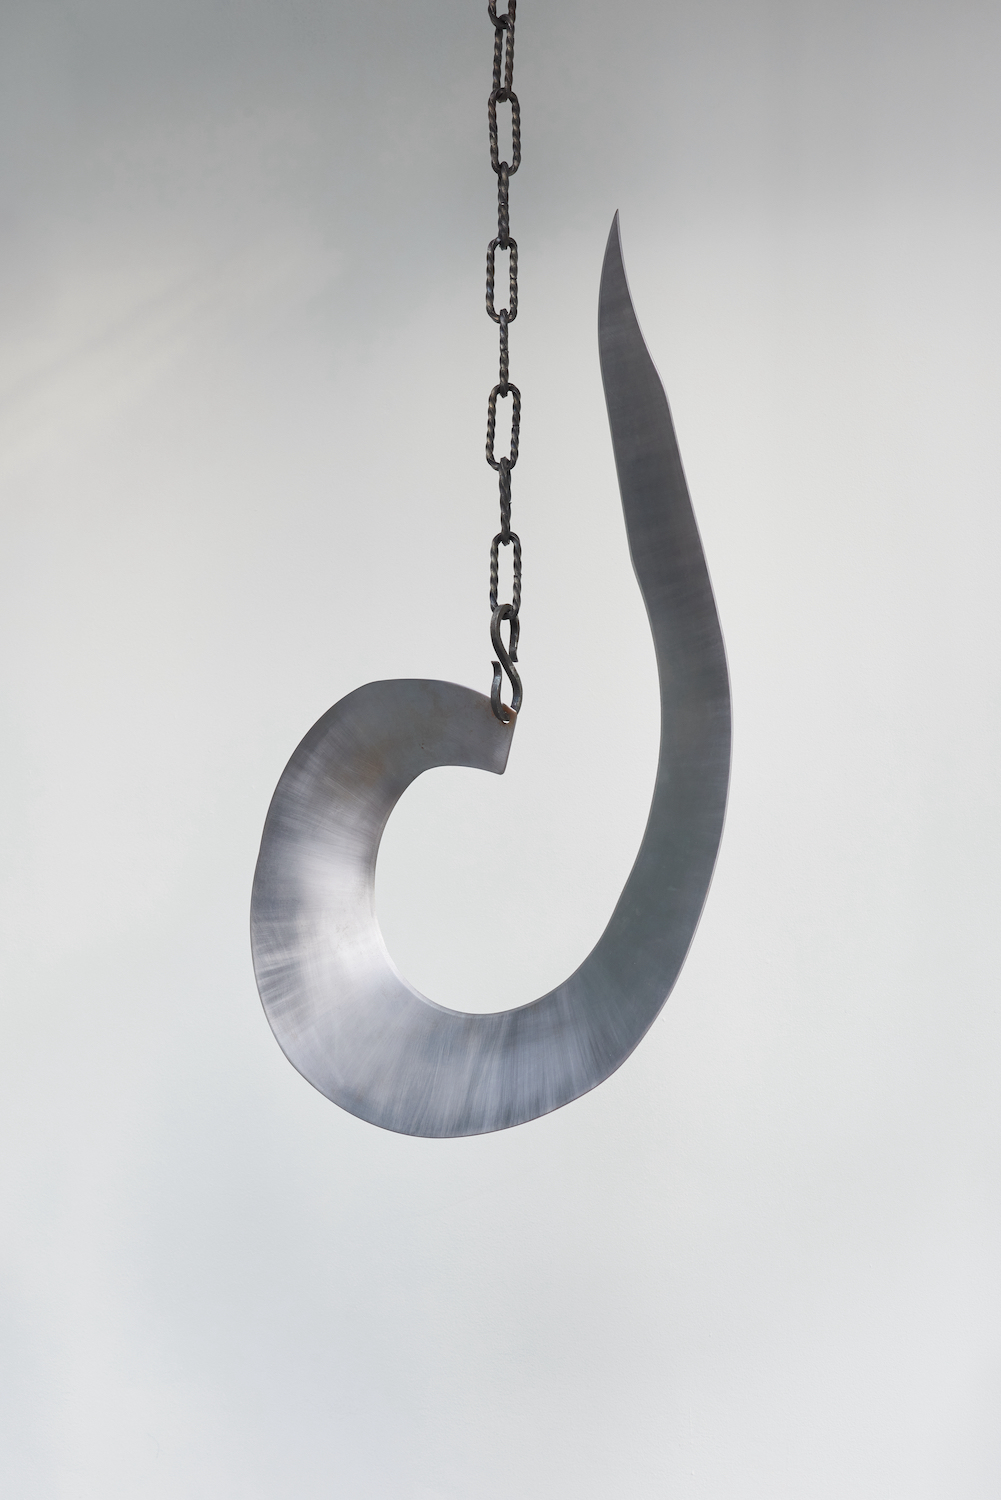 Tarek Lakhrissi, BETRAYING FAMILY, 2021. Steel and steel chains. 68 x 42 x 5 cm.